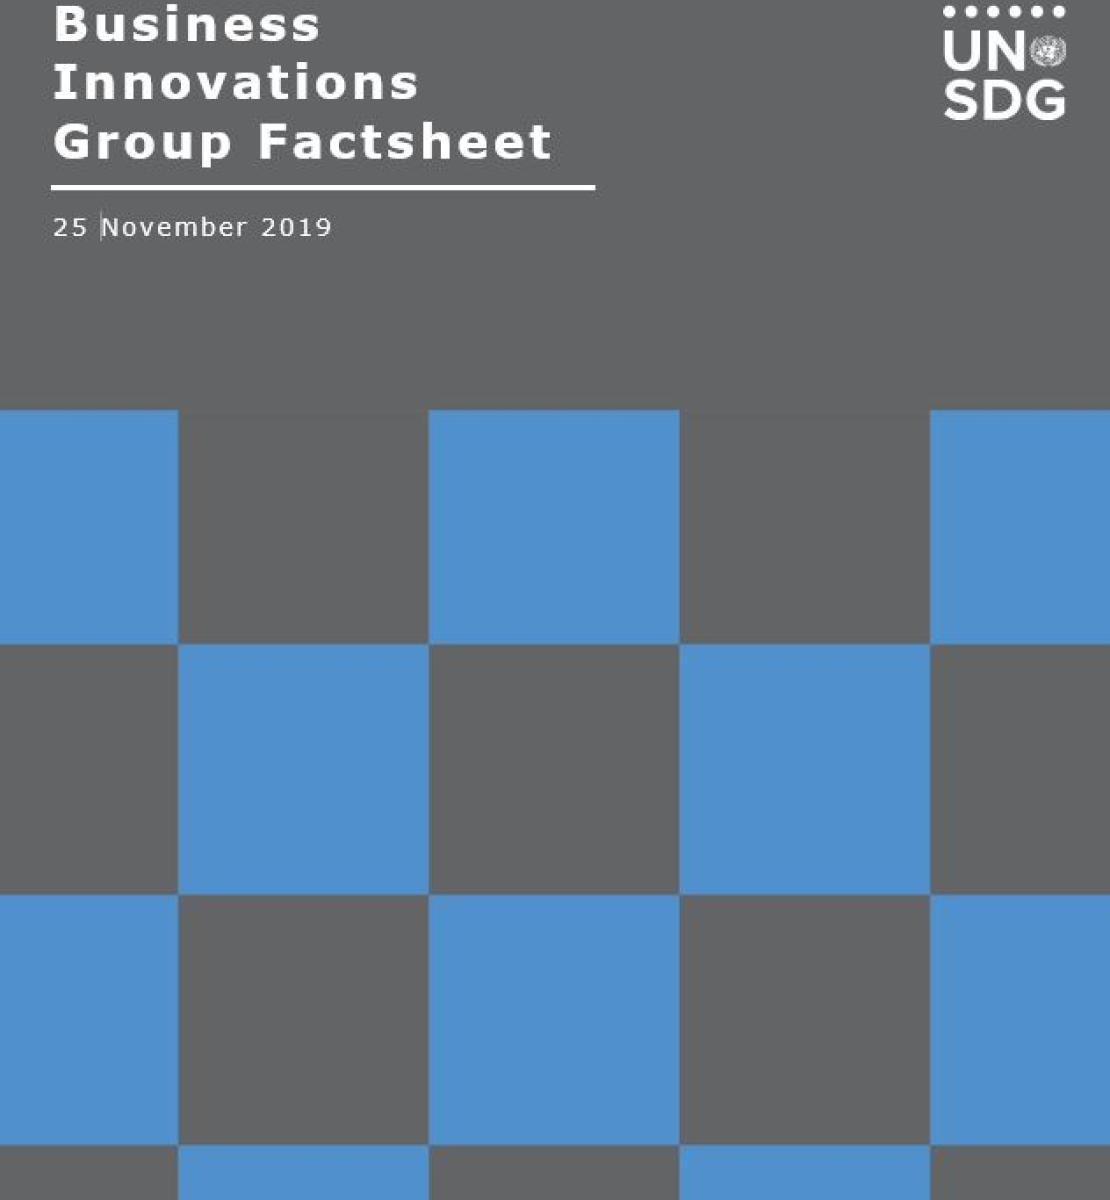 Business Innovations Group Factsheet cover shows the title against a solid background with a checkered pattern beneath.